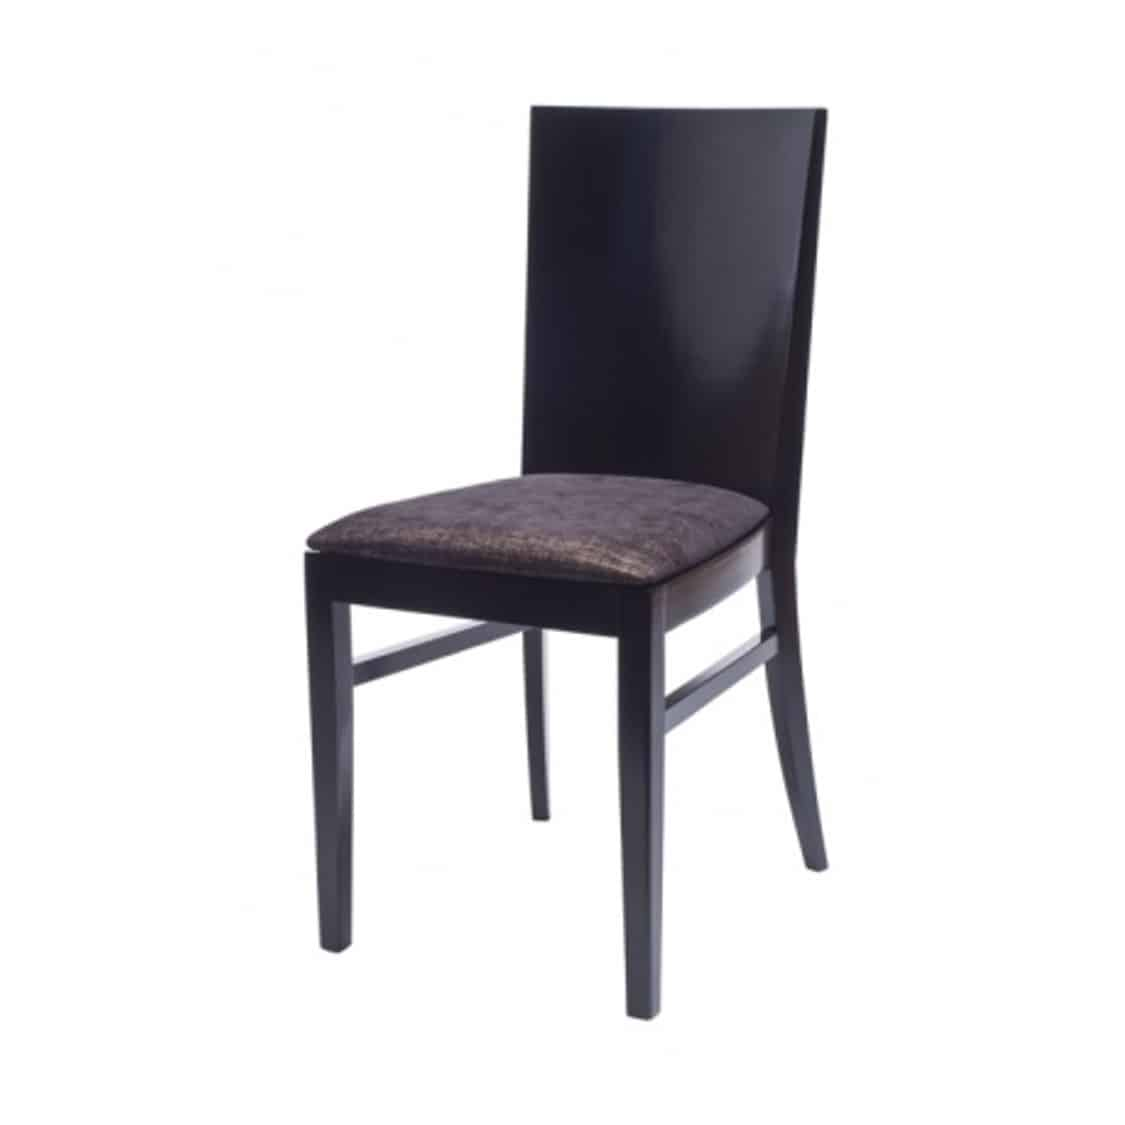 Emily Side Chair Dining Chair Restaurant chair black frame with black faux leather